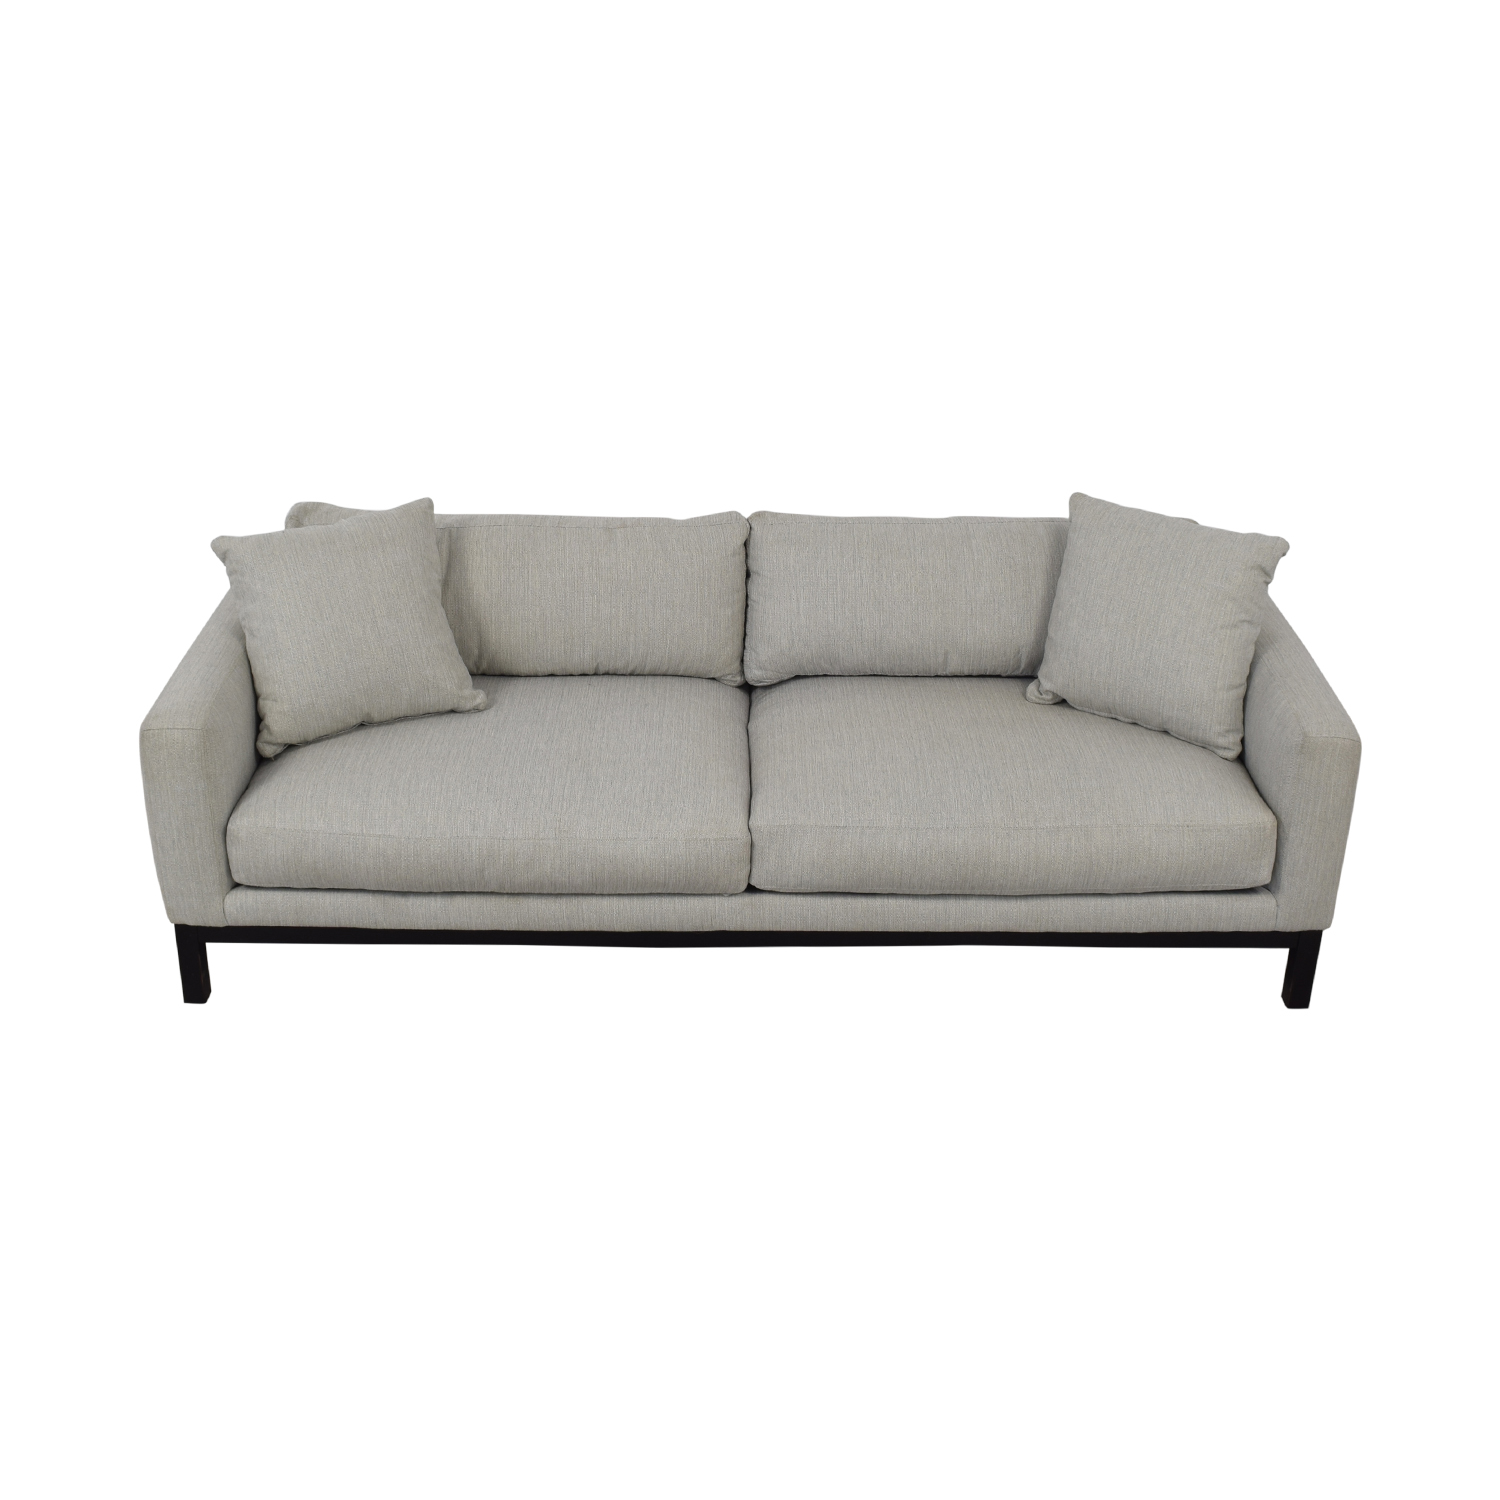 buy Rowe Furniture Contemporary Light Gray Upholstered Sofa Rowe Furniture Classic Sofas